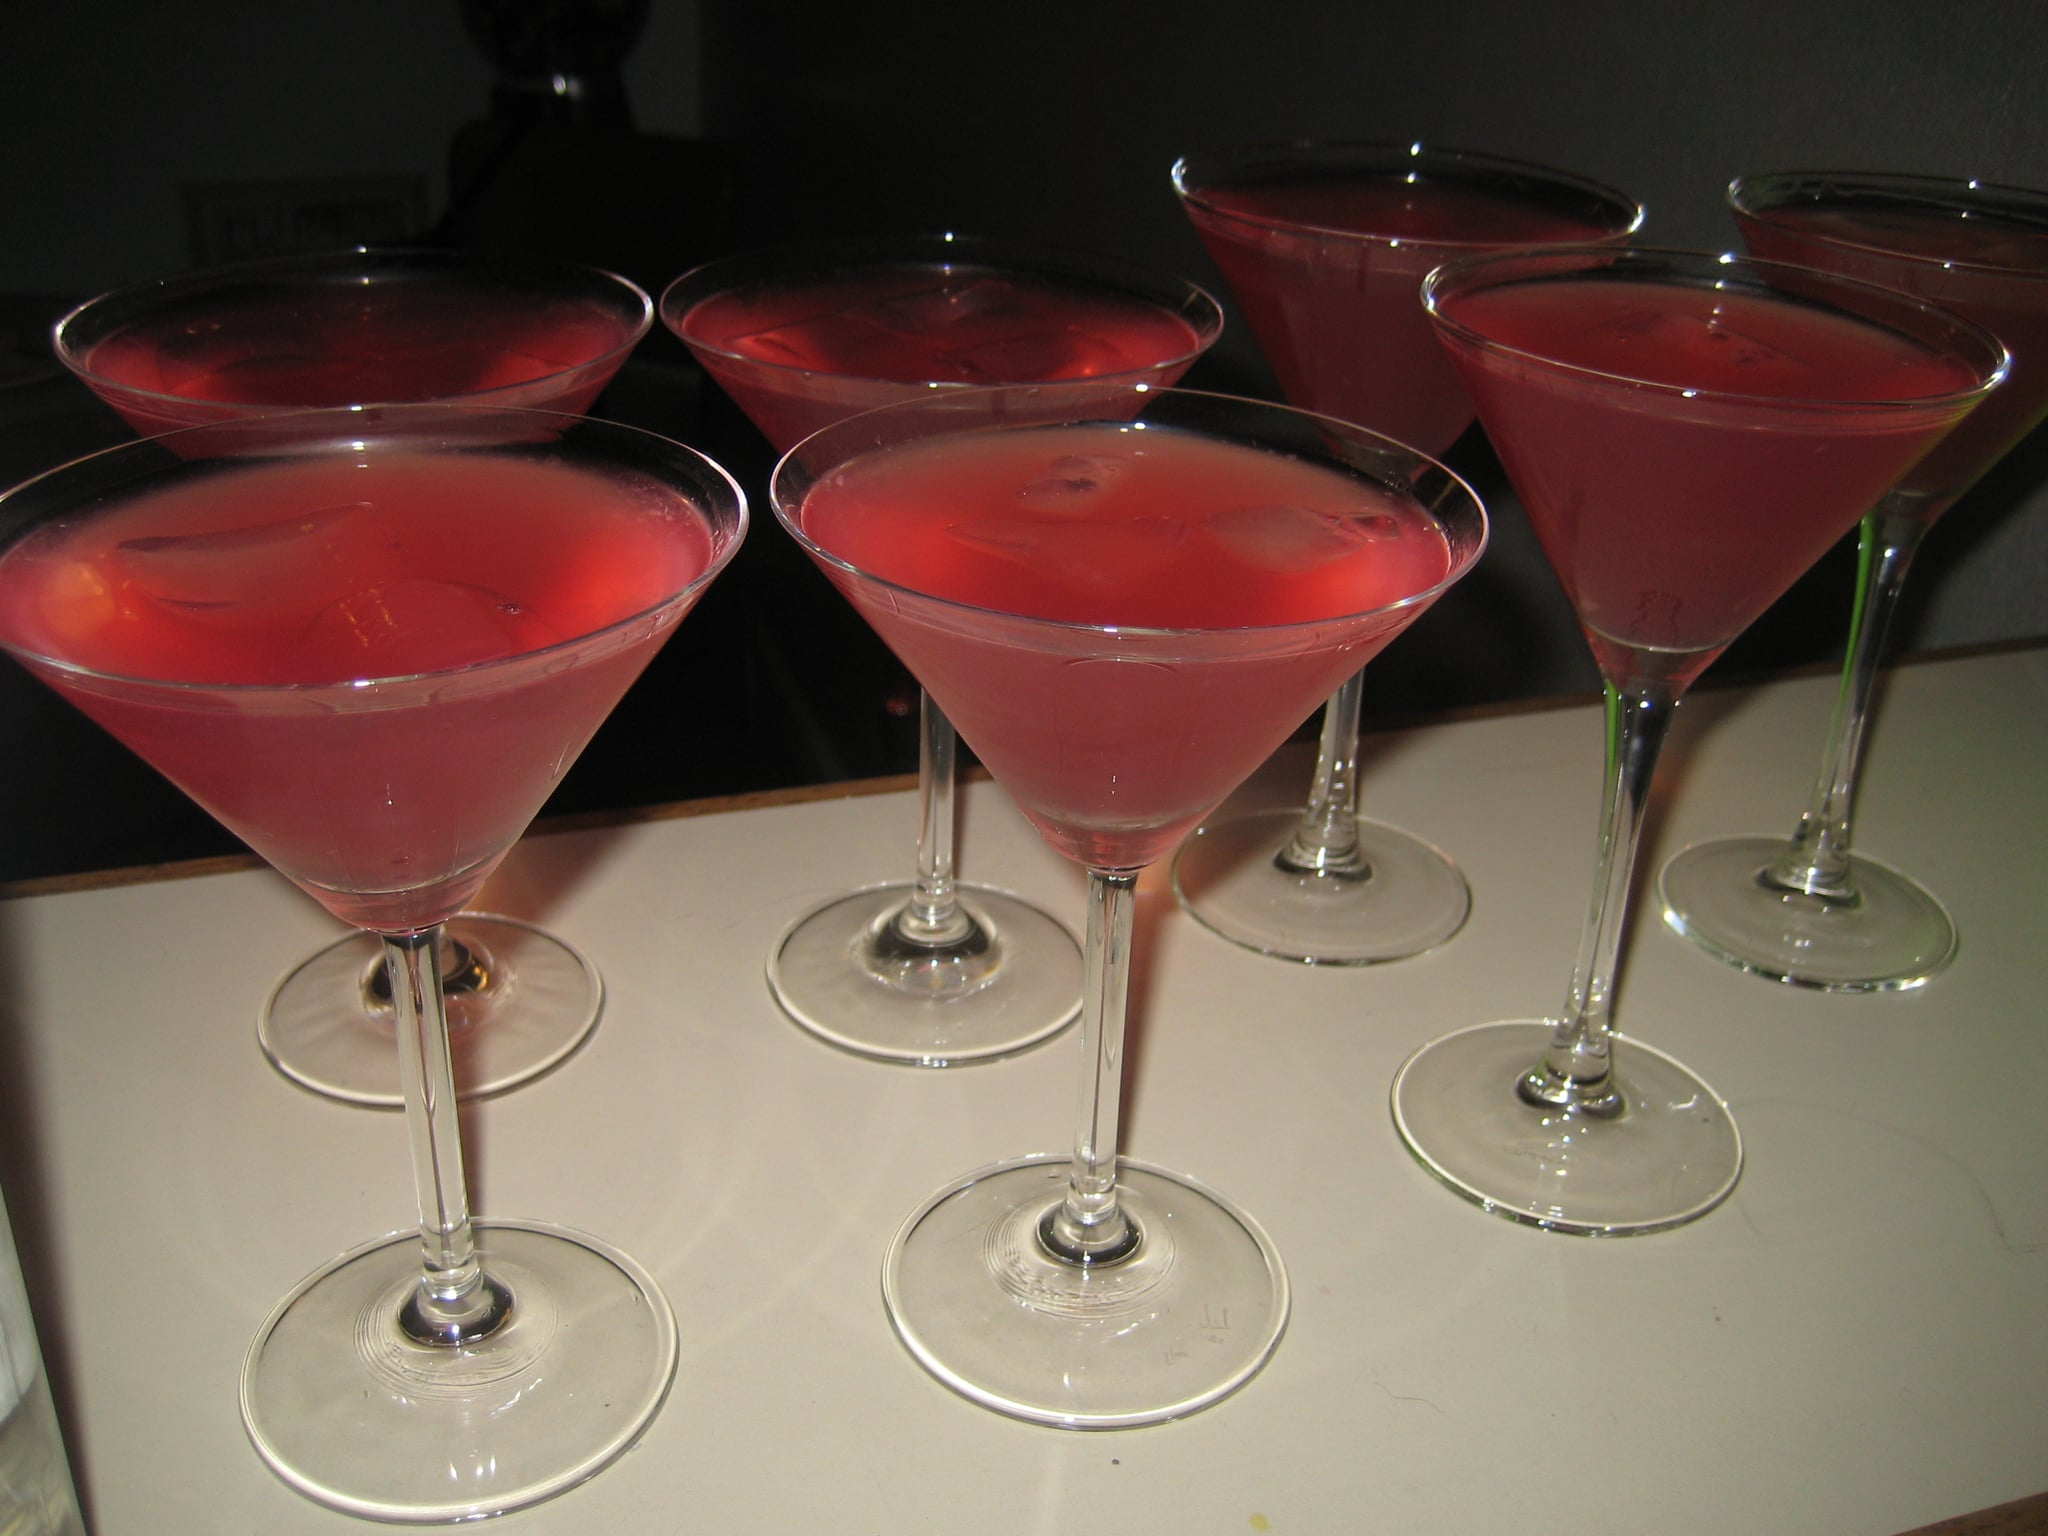 We guzzled far too many cosmopolitans — the cranberry cocktail that was made popular by the show. Are you excited for the Sex and the City movie? How do you plan on celebrating?